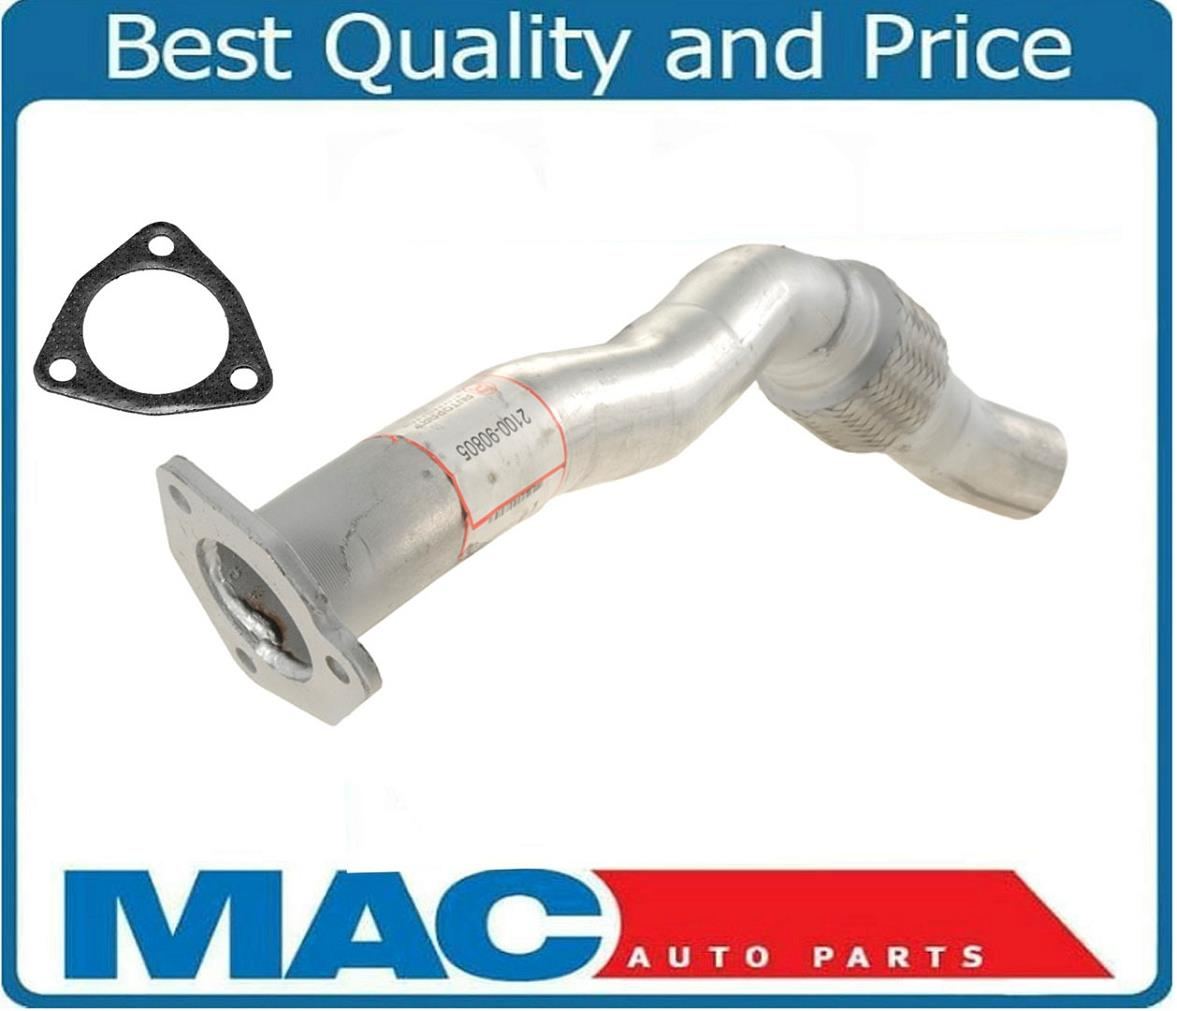 For 97-01 A4 Quattro W/ Manual Transmission Only 1.8T Turbo Engine Flex Pipe  NEW